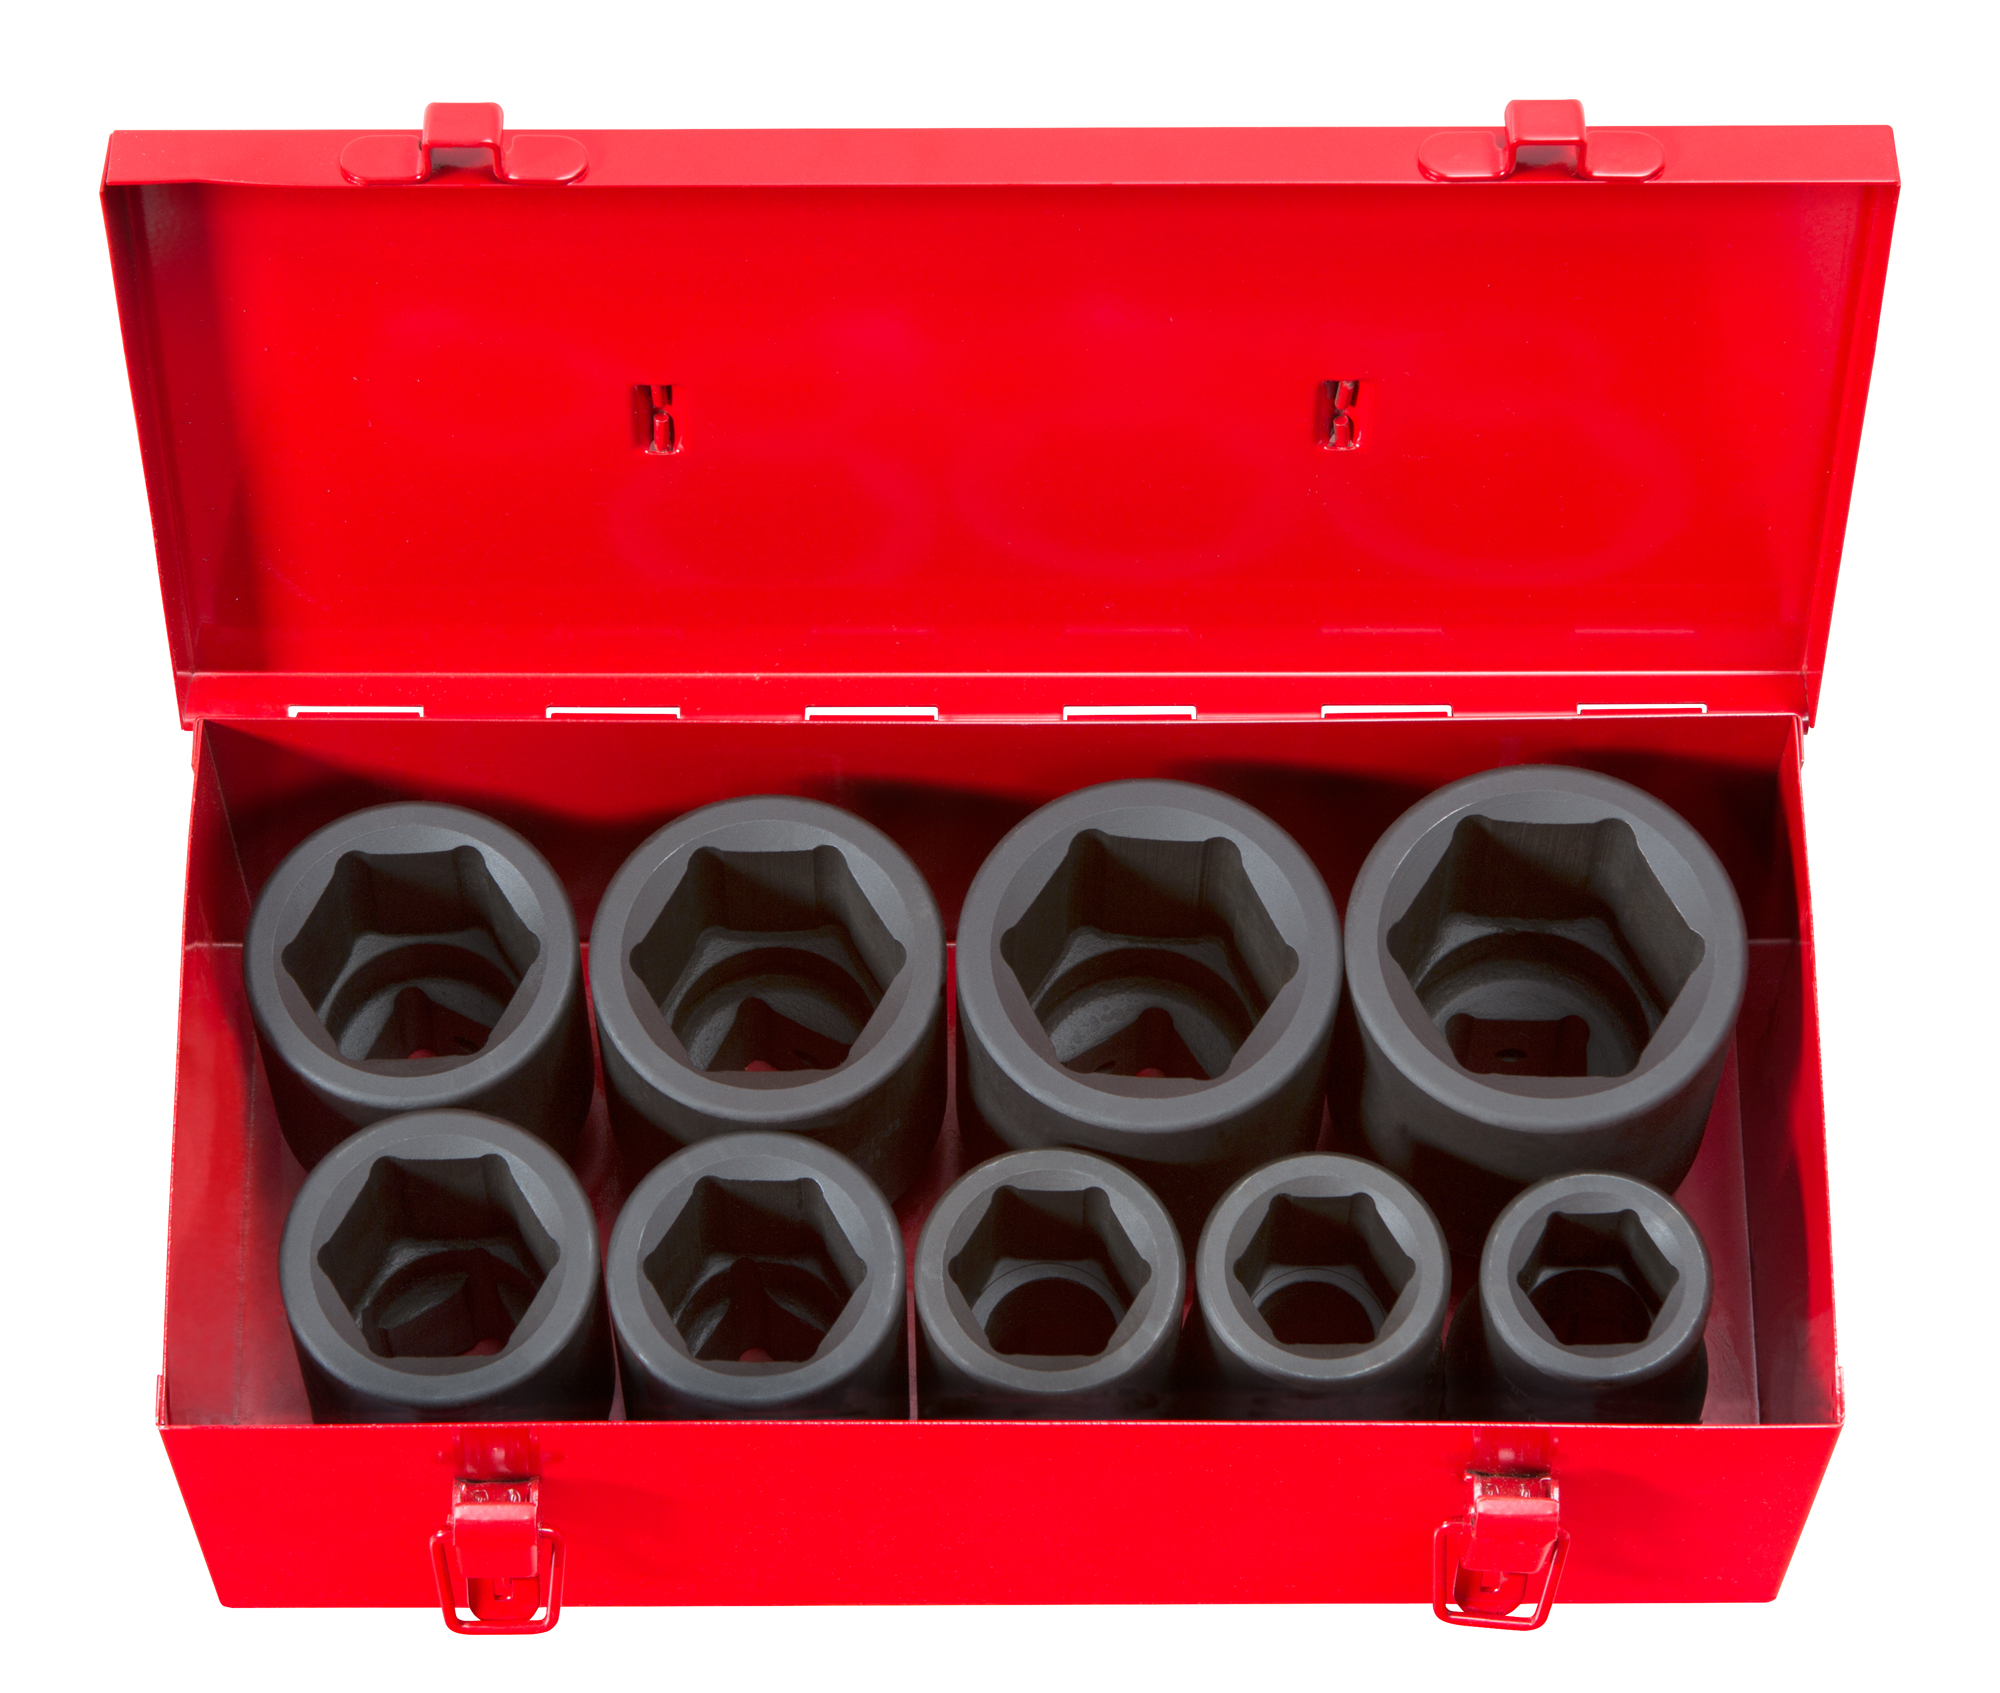 TEKTON 1-Inch Drive Deep Impact Socket Set, Inch, Cr-Mo, 6-Point, 1-Inch 2-Inch, 9-Sockets... by TEKTON